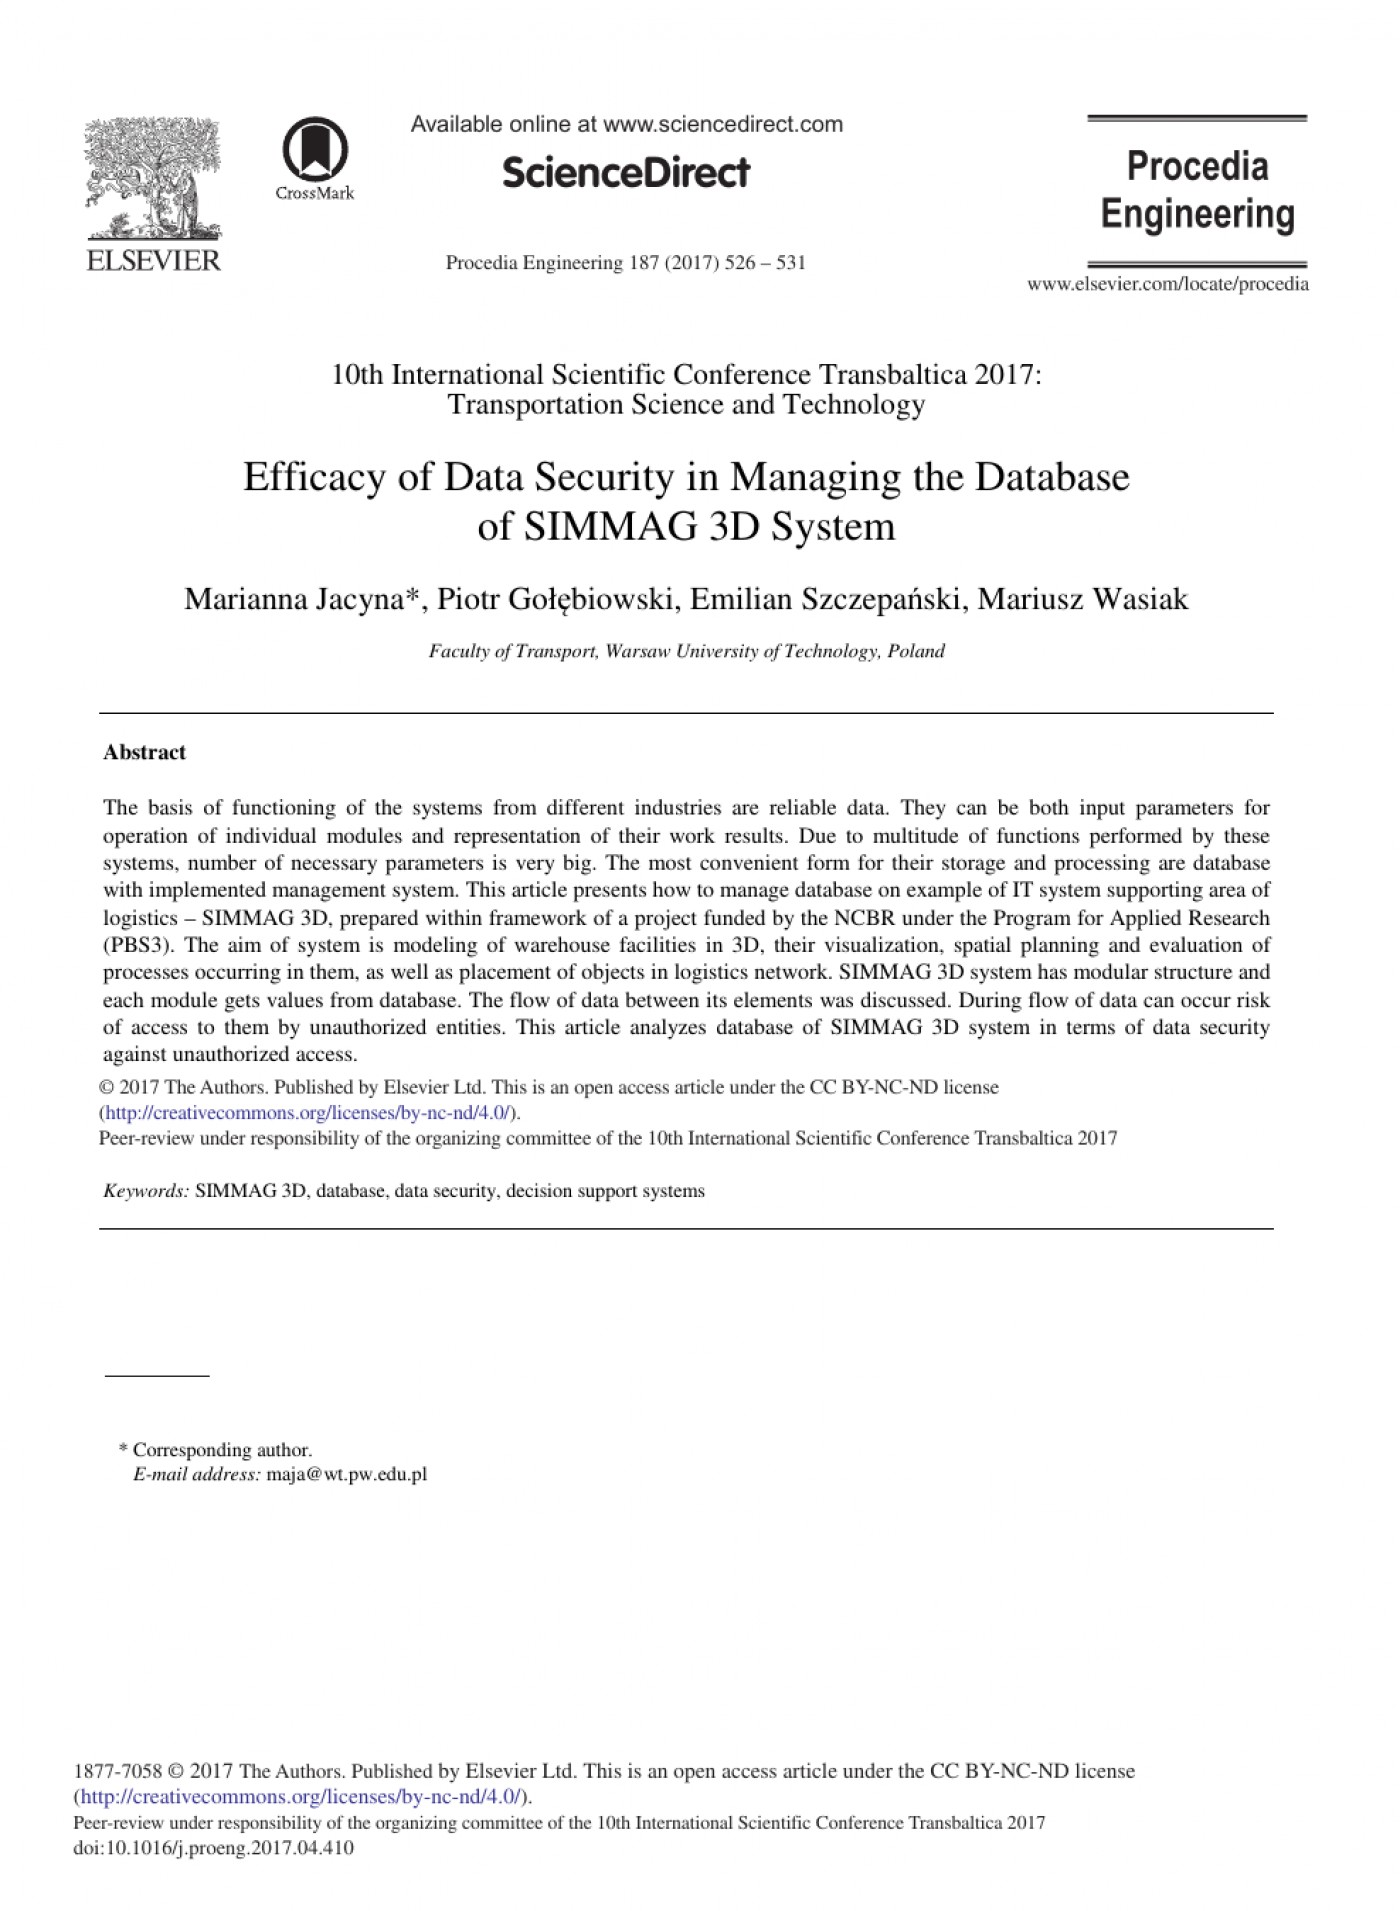 004 Database Security Research Paper Fascinating Abstract 1400